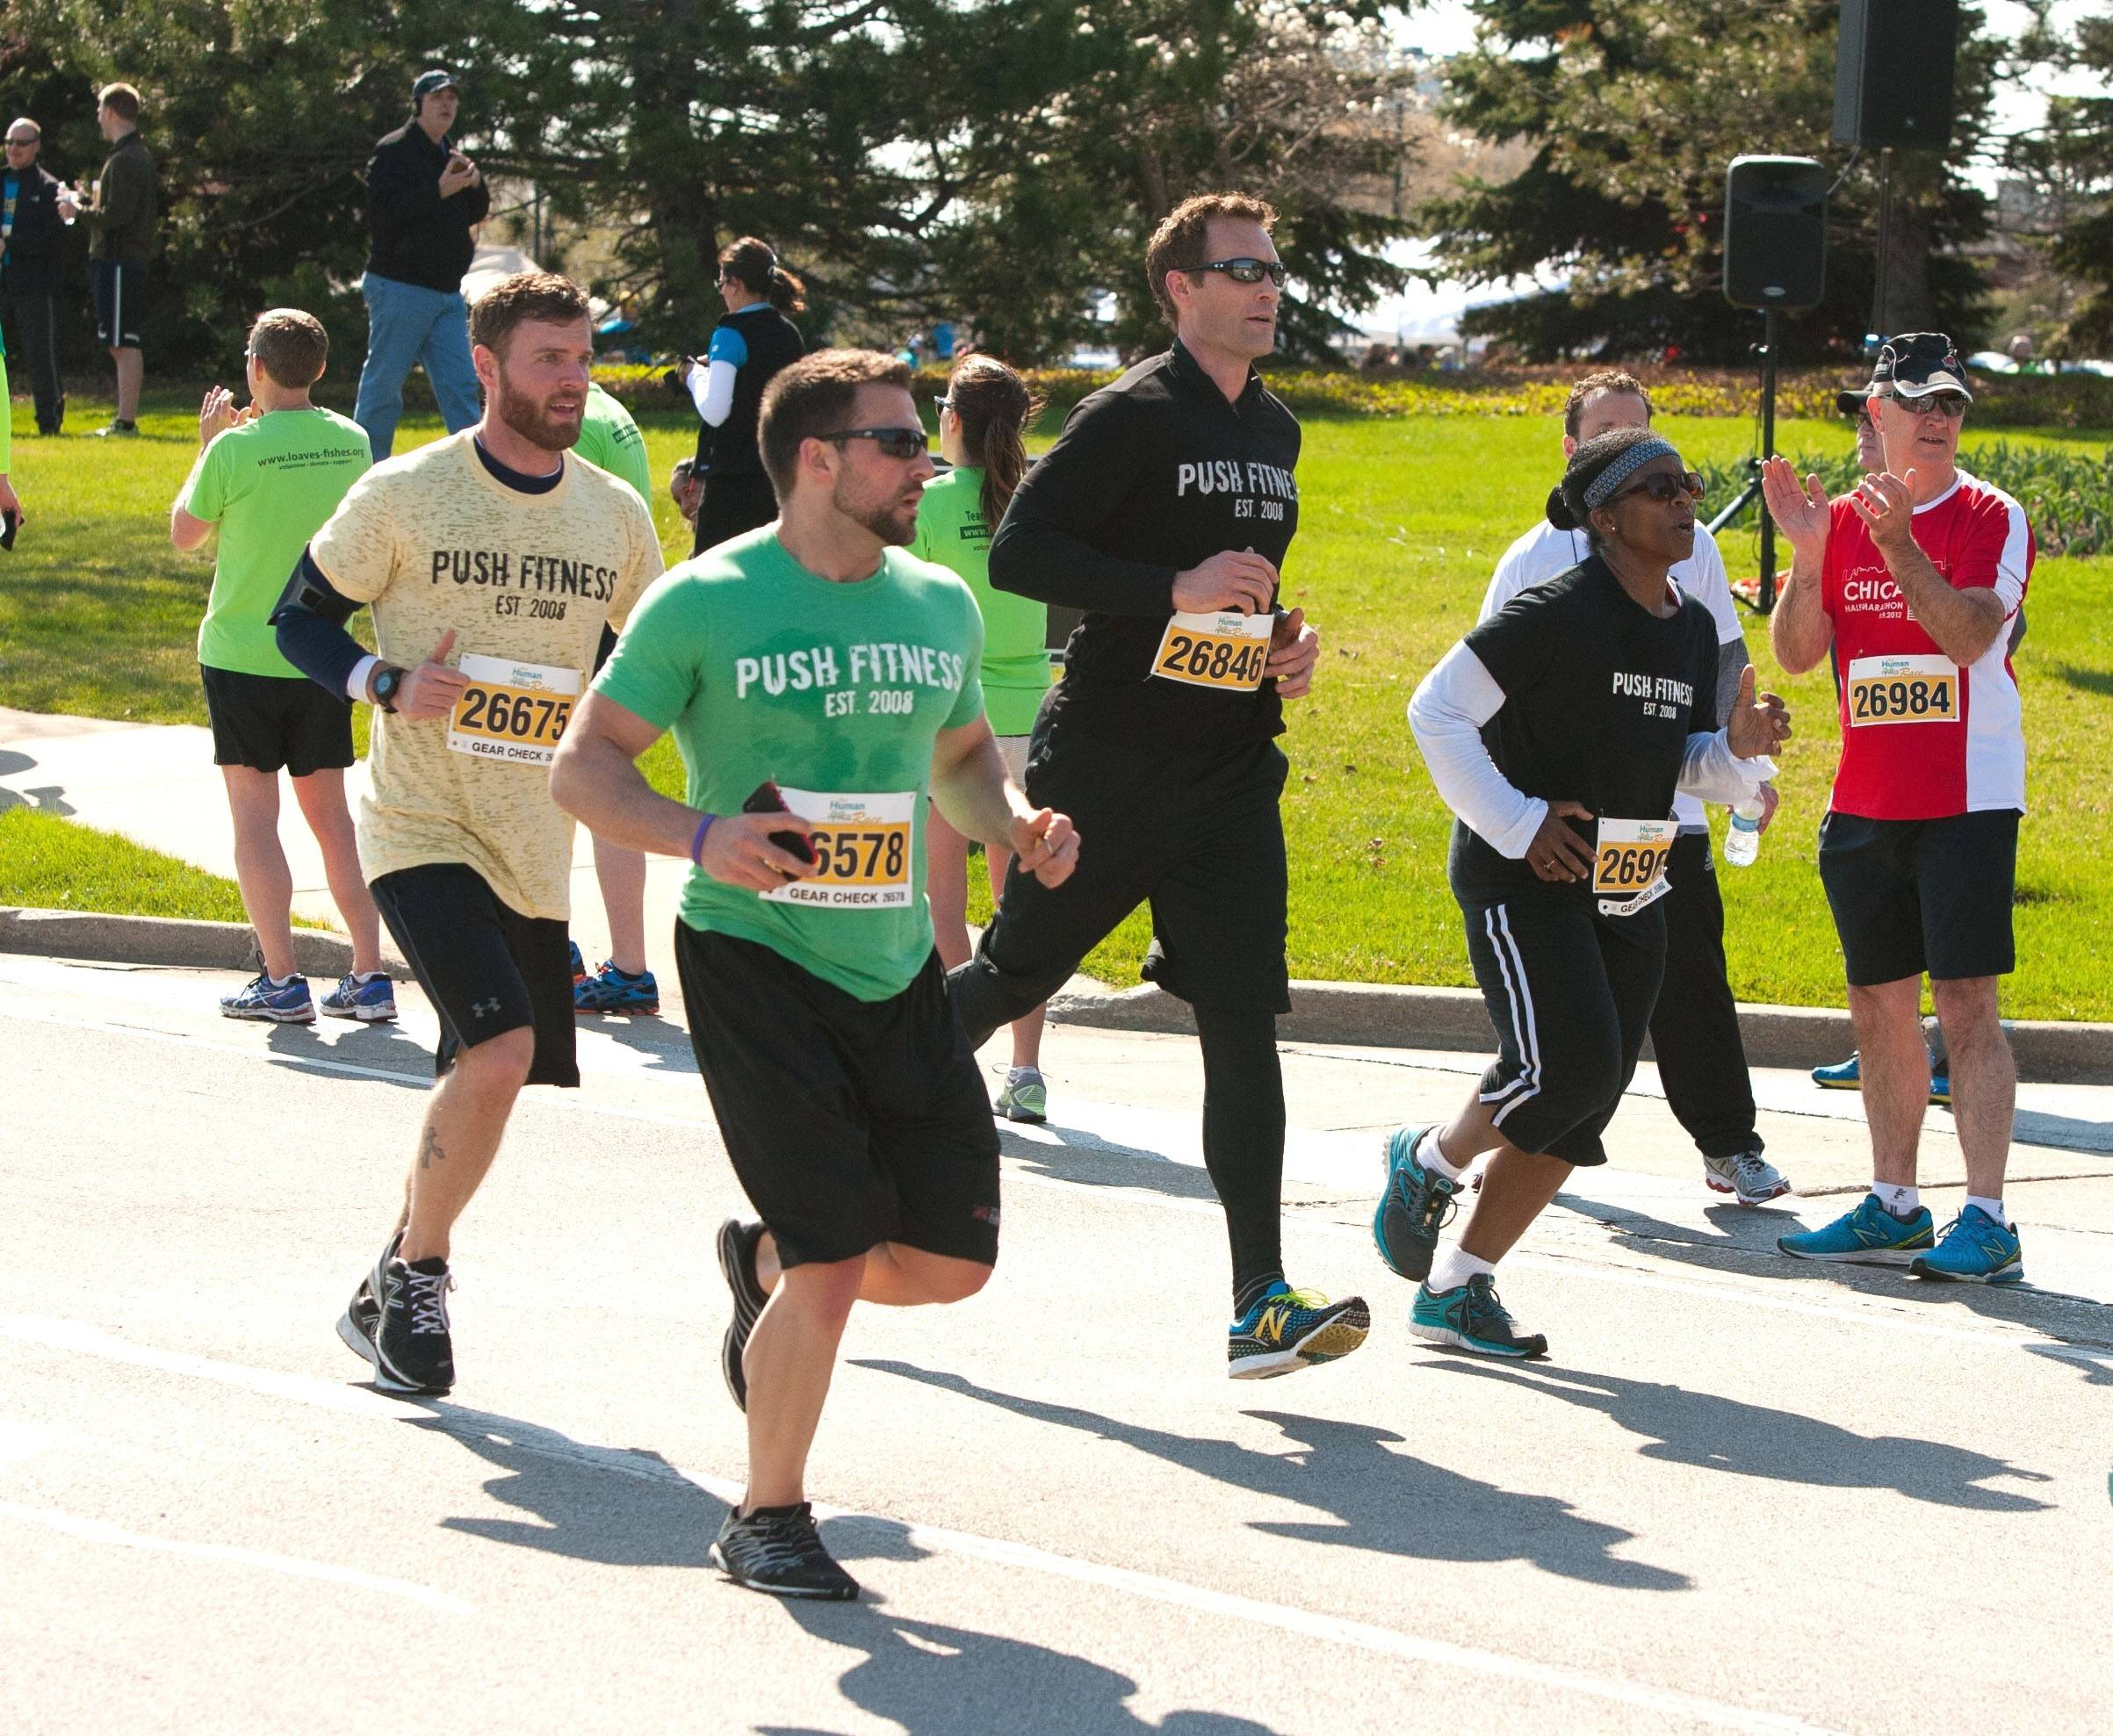 Personal trainer and Push Fitness owner Joshua Steckler (black T-shirt), has been alongside Lisa the whole way, including running at her pace and encouraging her throughout the DuPage Human Race 5K in Downers Grove April 26.